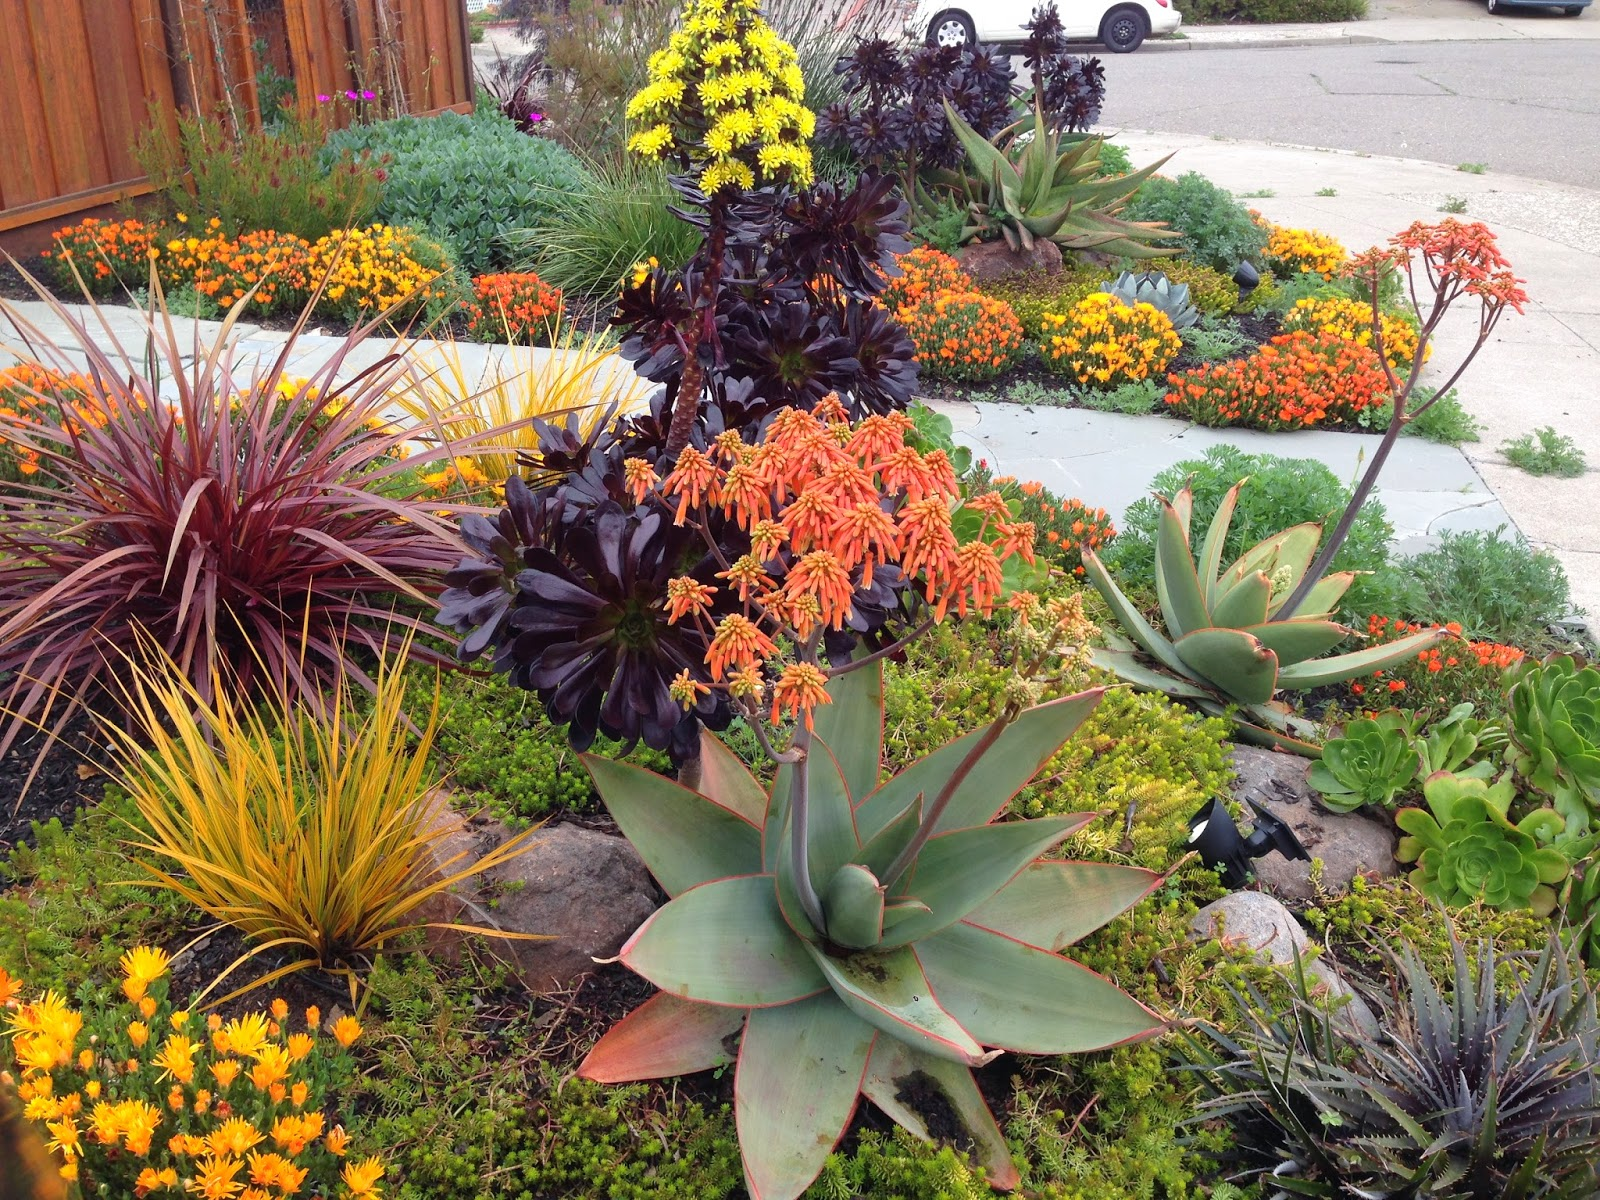 Farallon Gardens Alameda Drought Tolerant Garden February Blooms Drought Resistant Landscaping Ideas